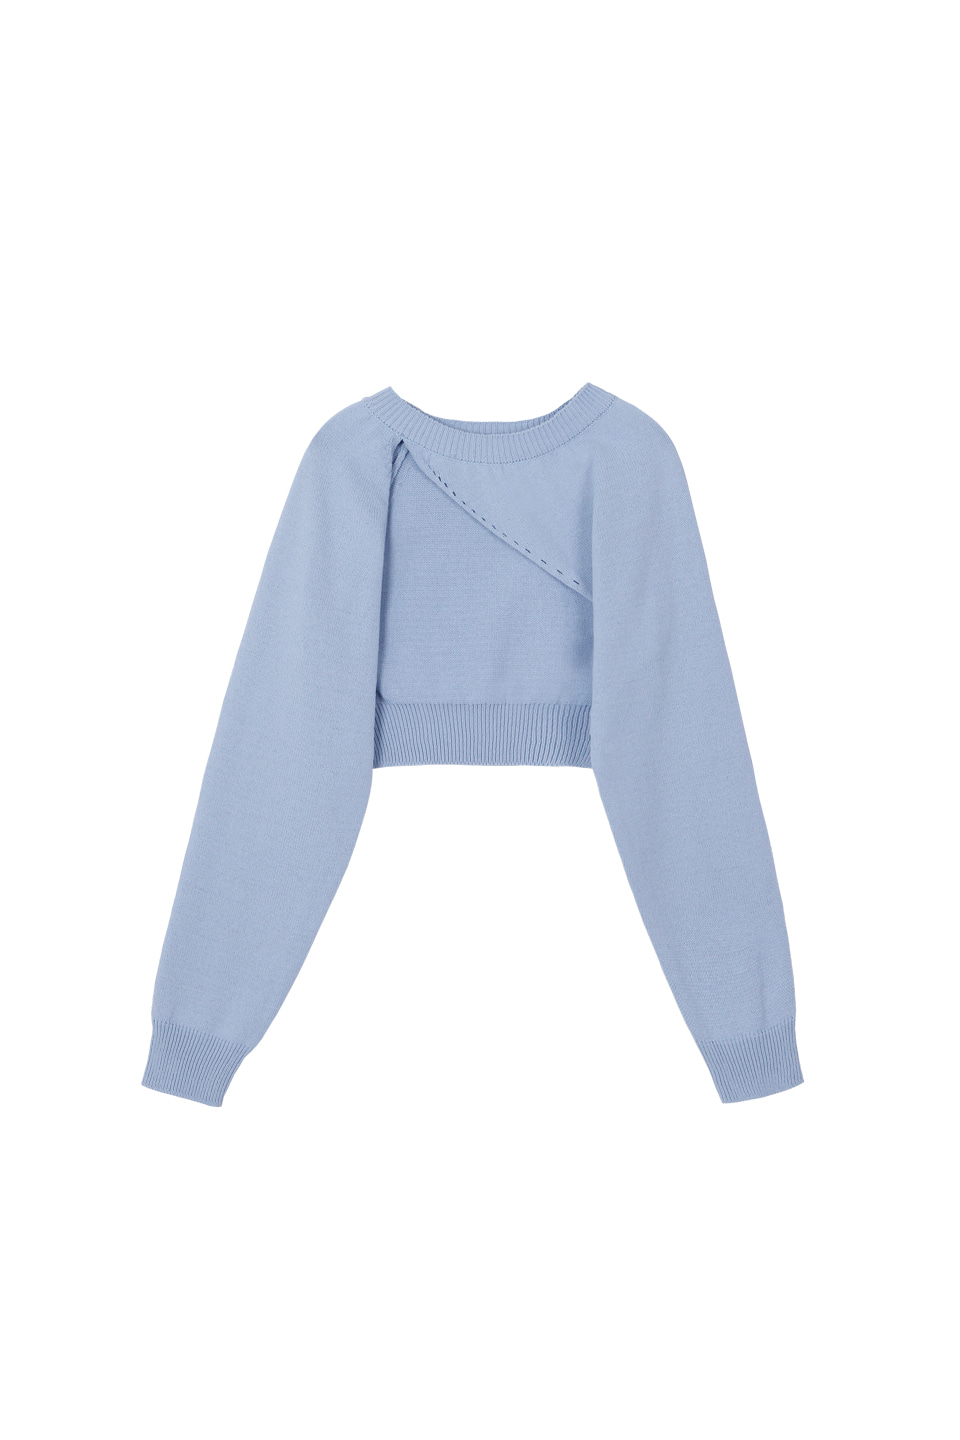 (3차재입고) SS UNBALANCE BOLERO KNIT TOP - SKY BLUE